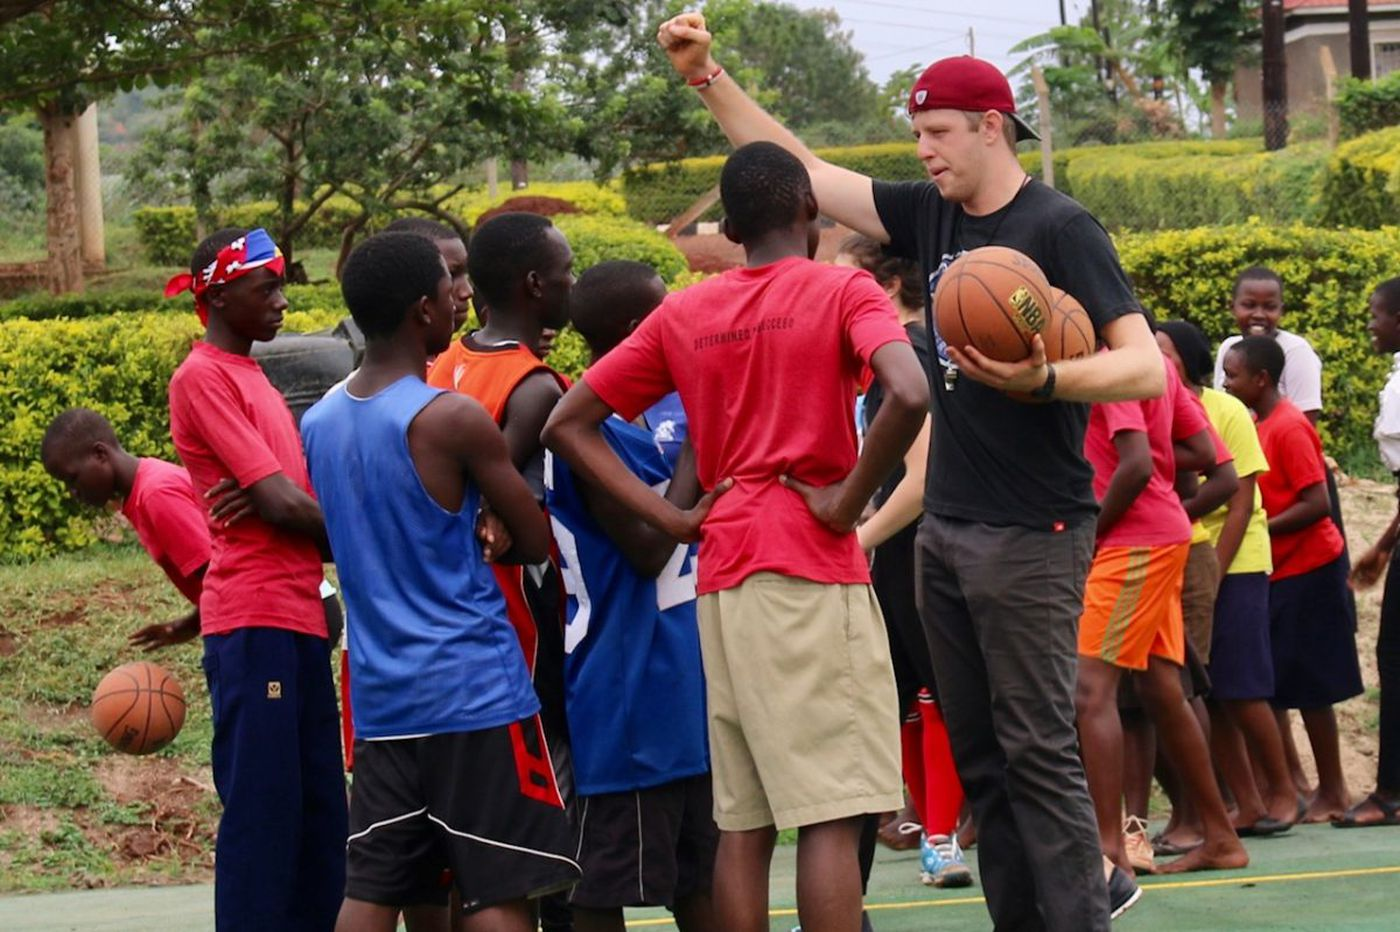 Eagles' Nate Sudfeld wants to make a difference, on and off the field